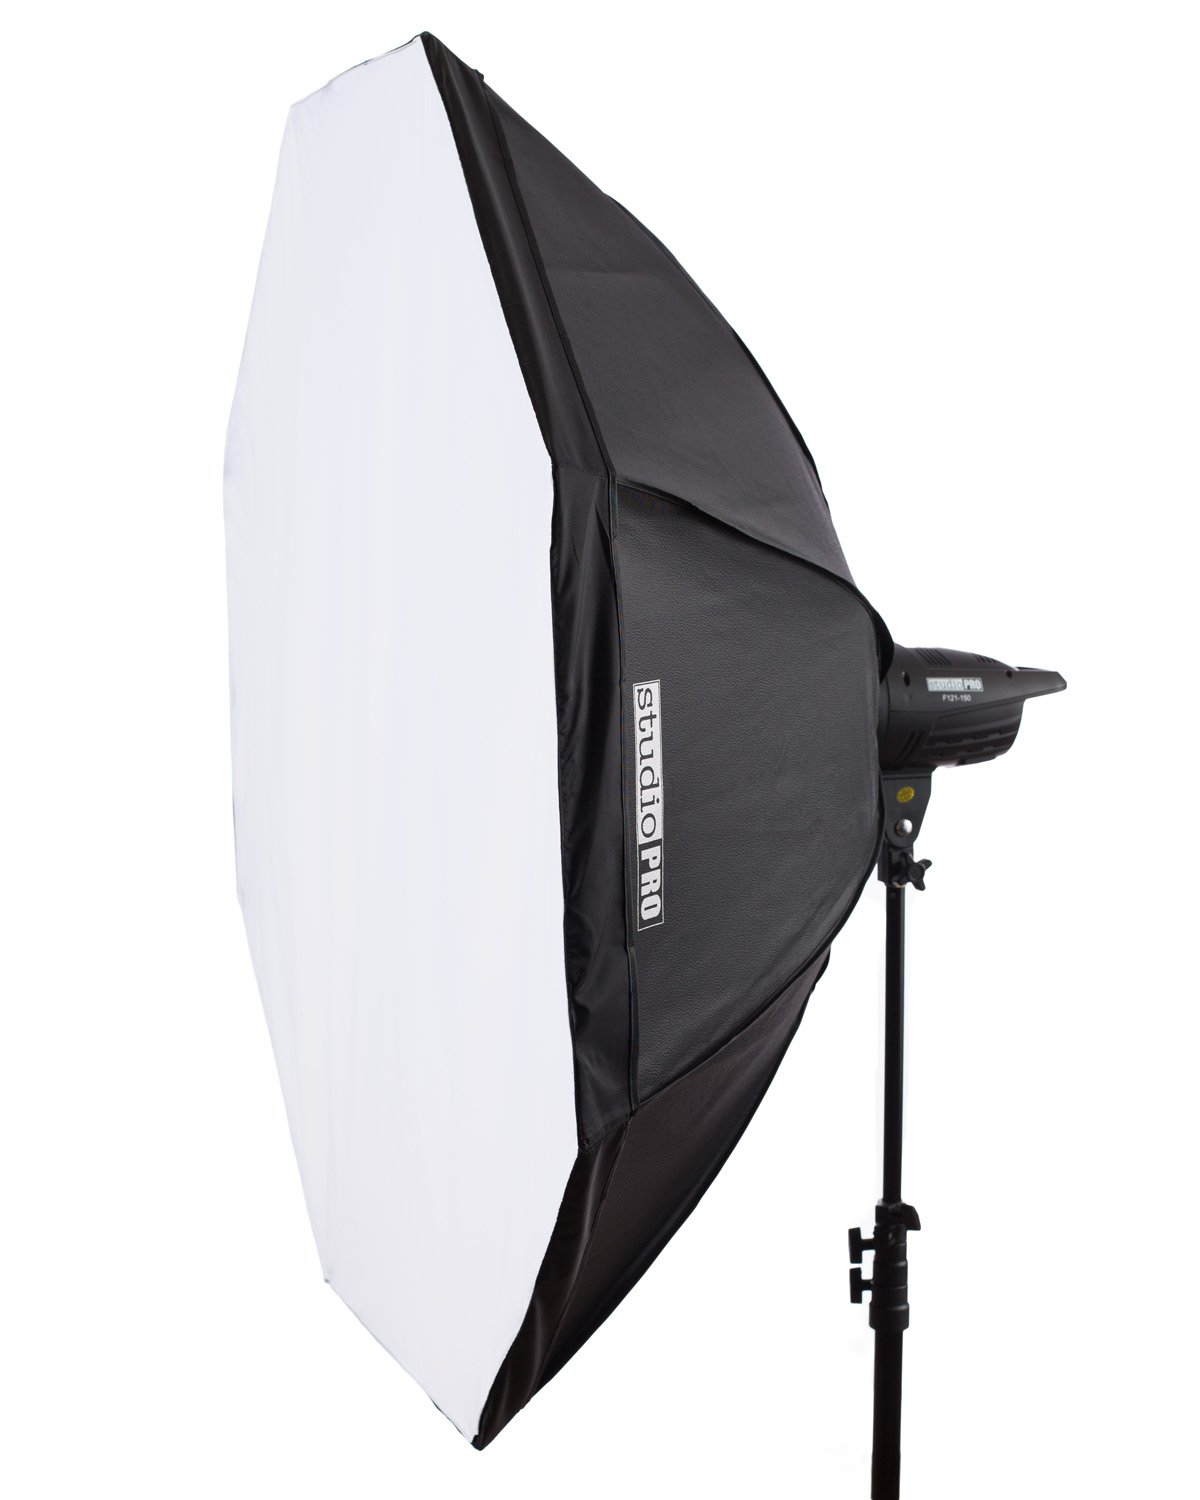 Fovitec - 68'' Octagon Softbox with Bowens Speedring for Photo & Video by Fovitec